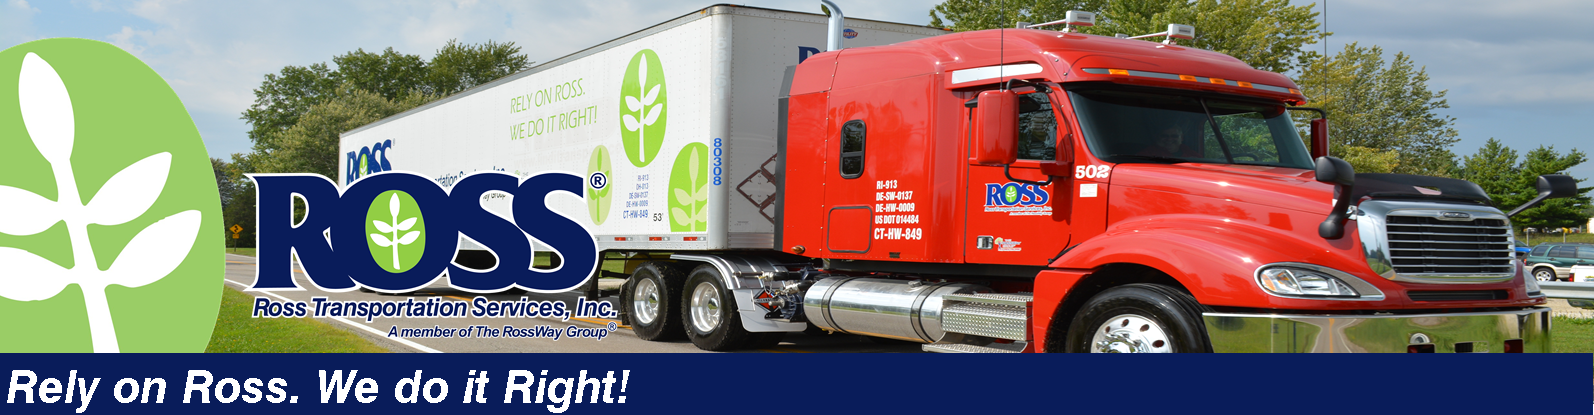 Ross Environmental Services, Inc  | Rely On Ross, We Do it Right!